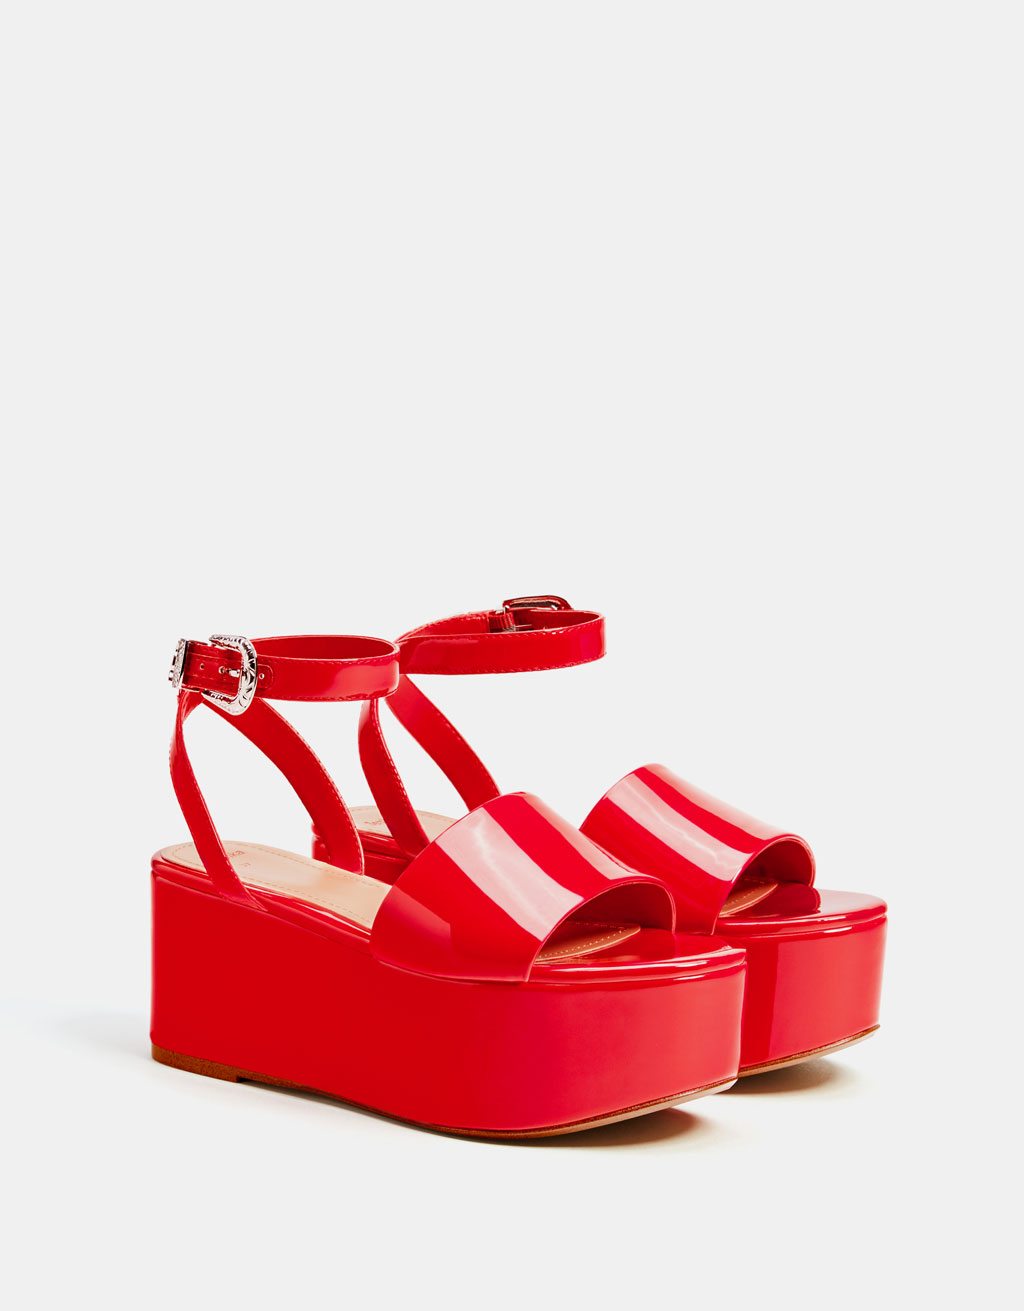 Red faux patent leather platform sandals